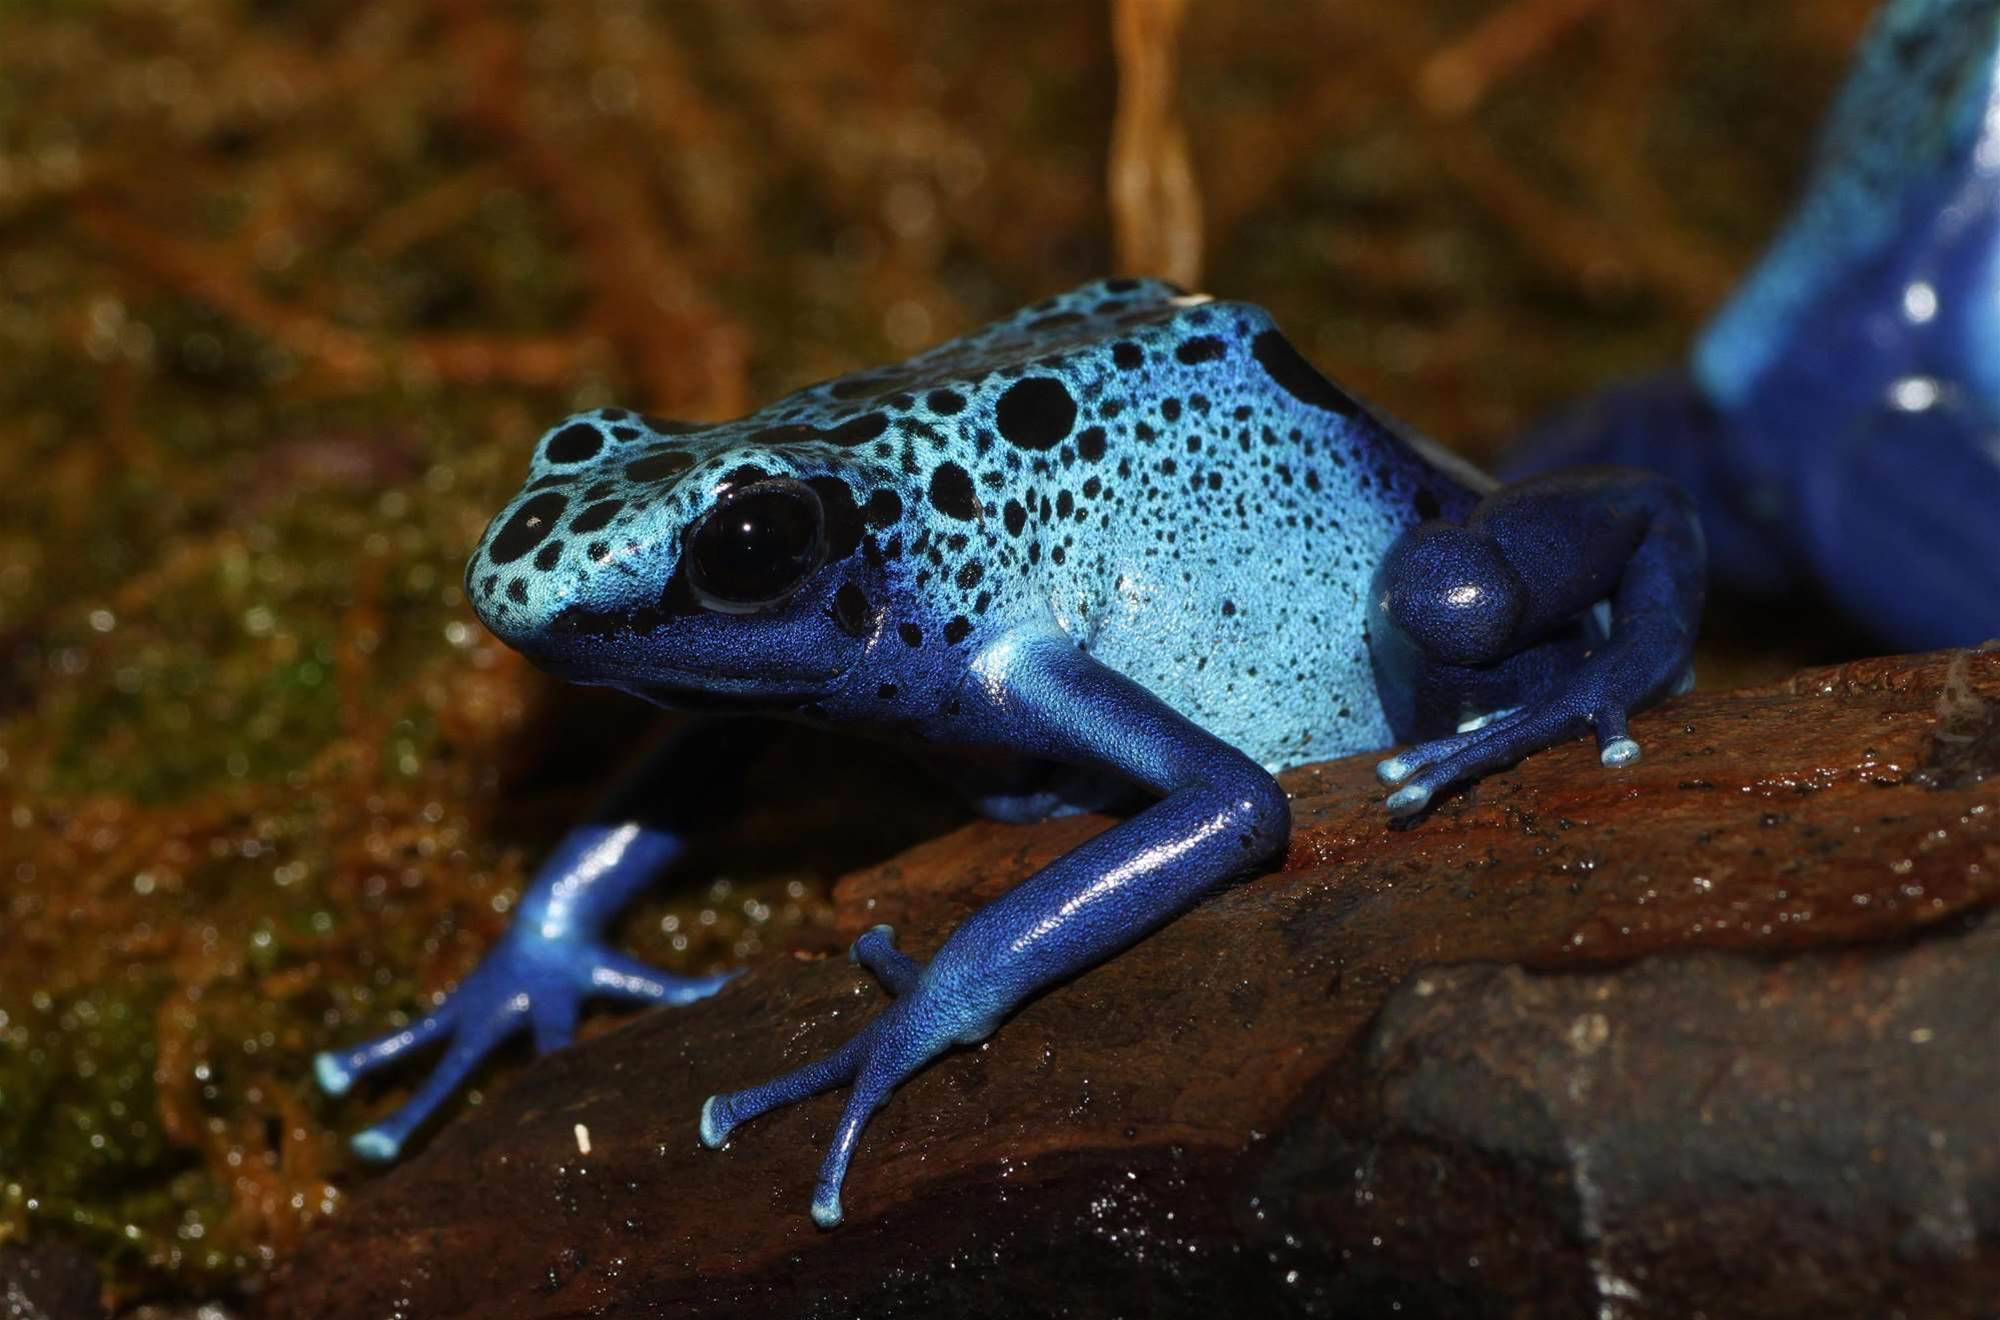 An Ice-Proof Coating For Aeroplanes Based On A Frog's Skin